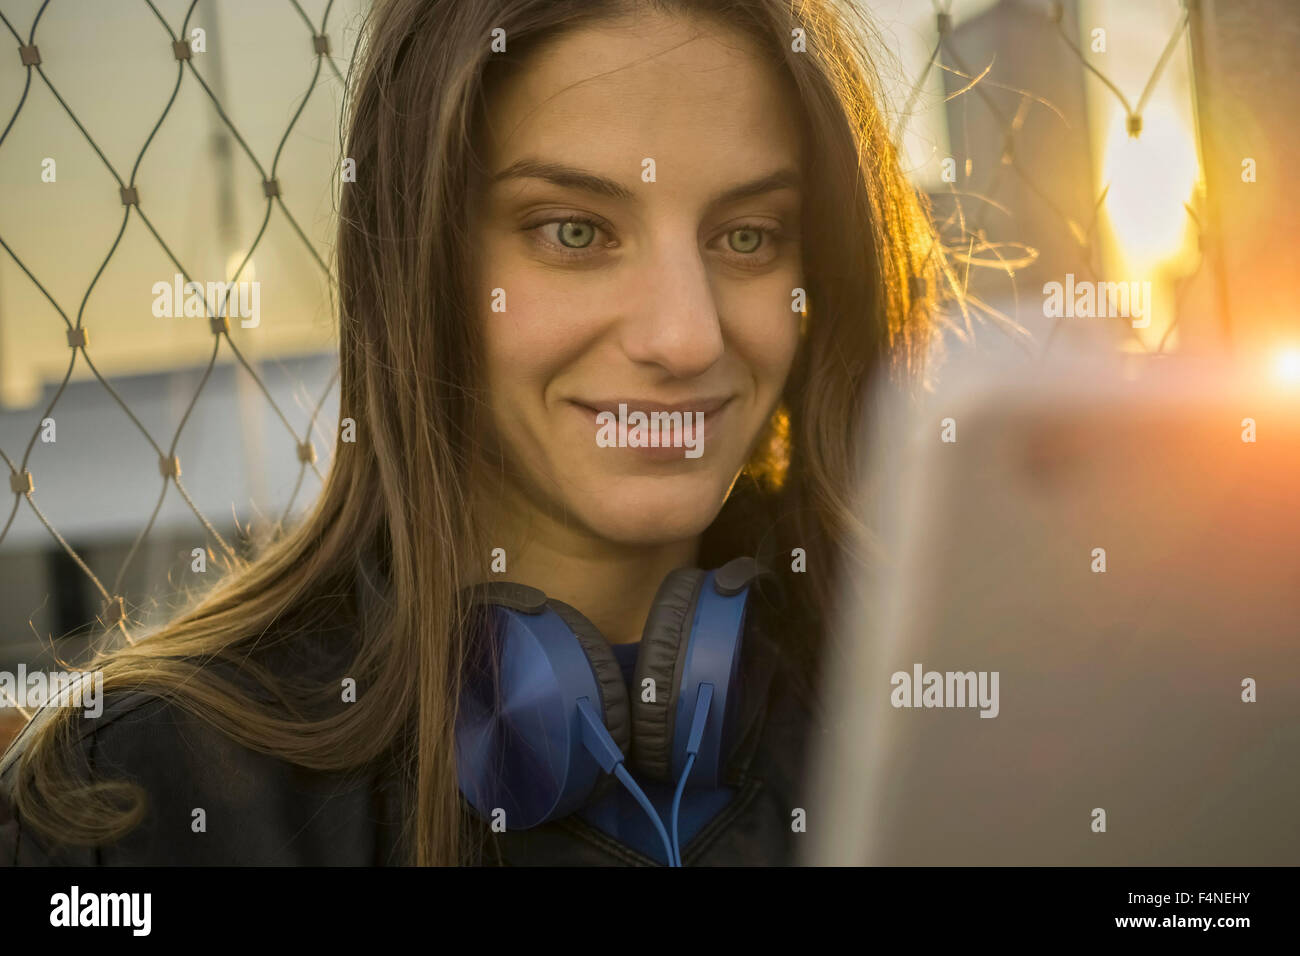 Portrait of astonished young woman looking at her smartphone at backlight - Stock Image